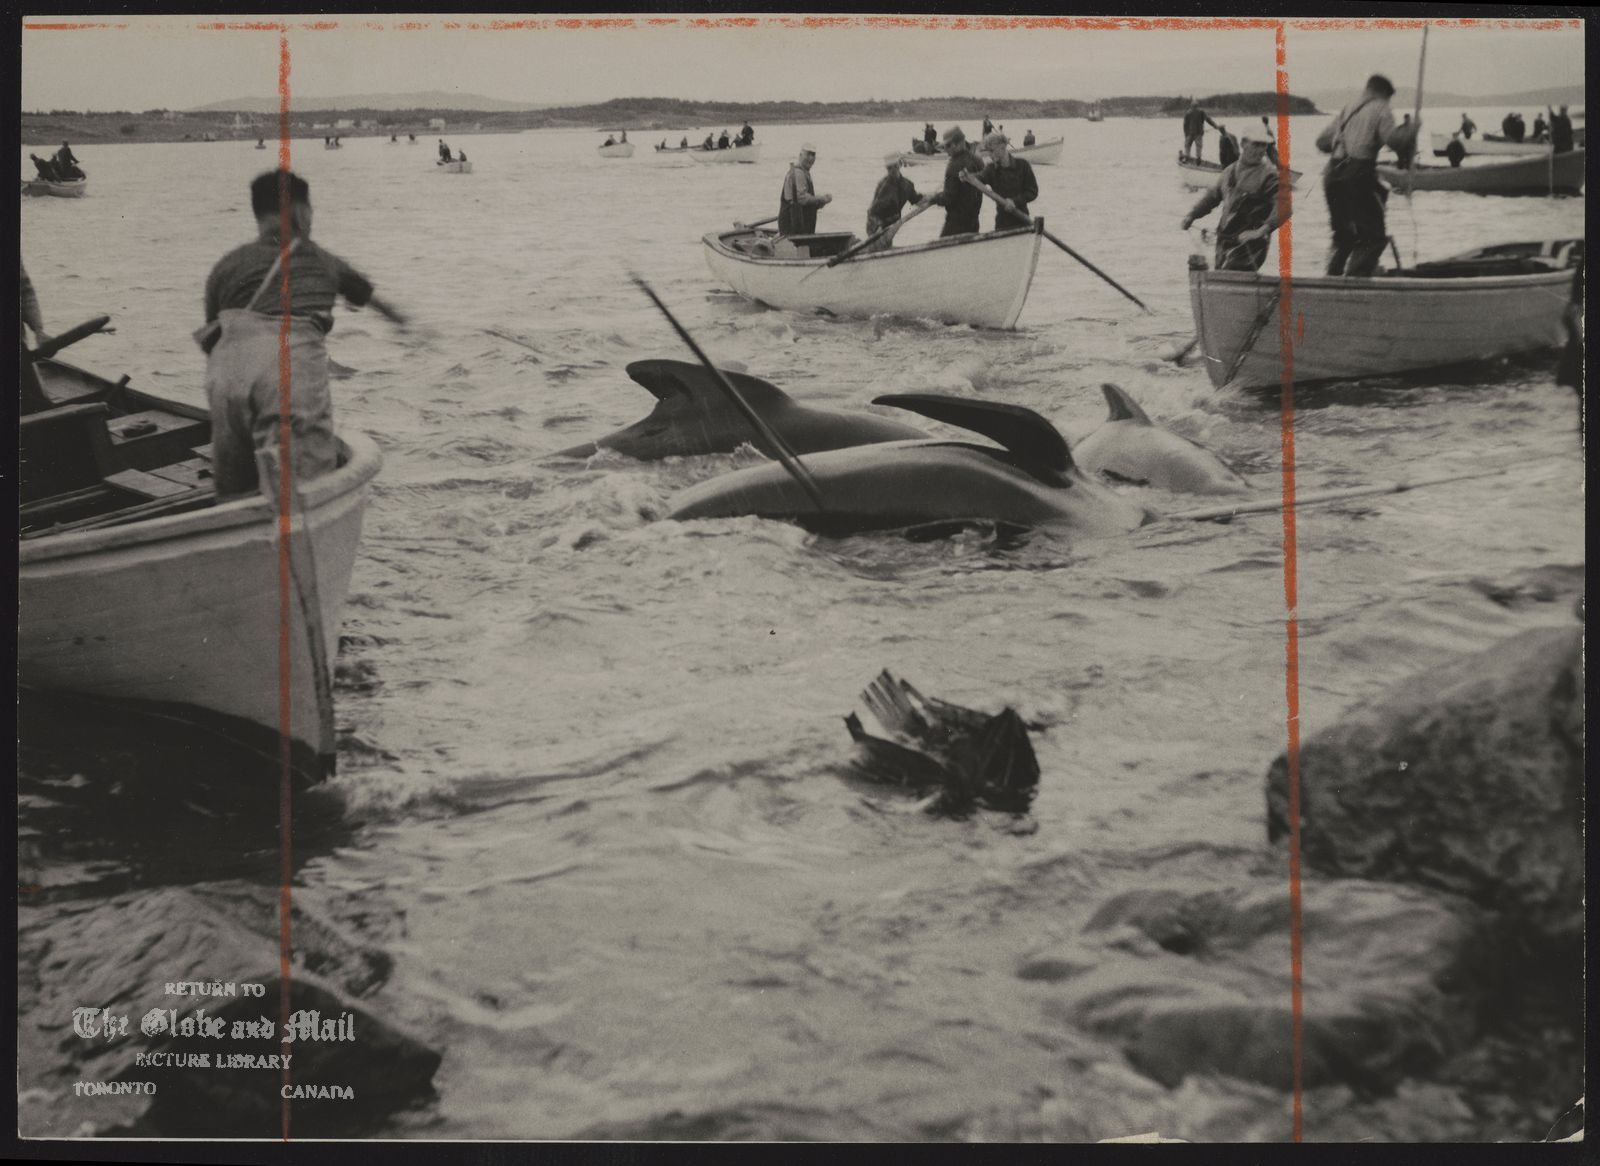 WHALING Harpoon posed, boy waits to strike at whale. 5,000 are slaughtered annually for supply food for Newfoundland's major mink farms.